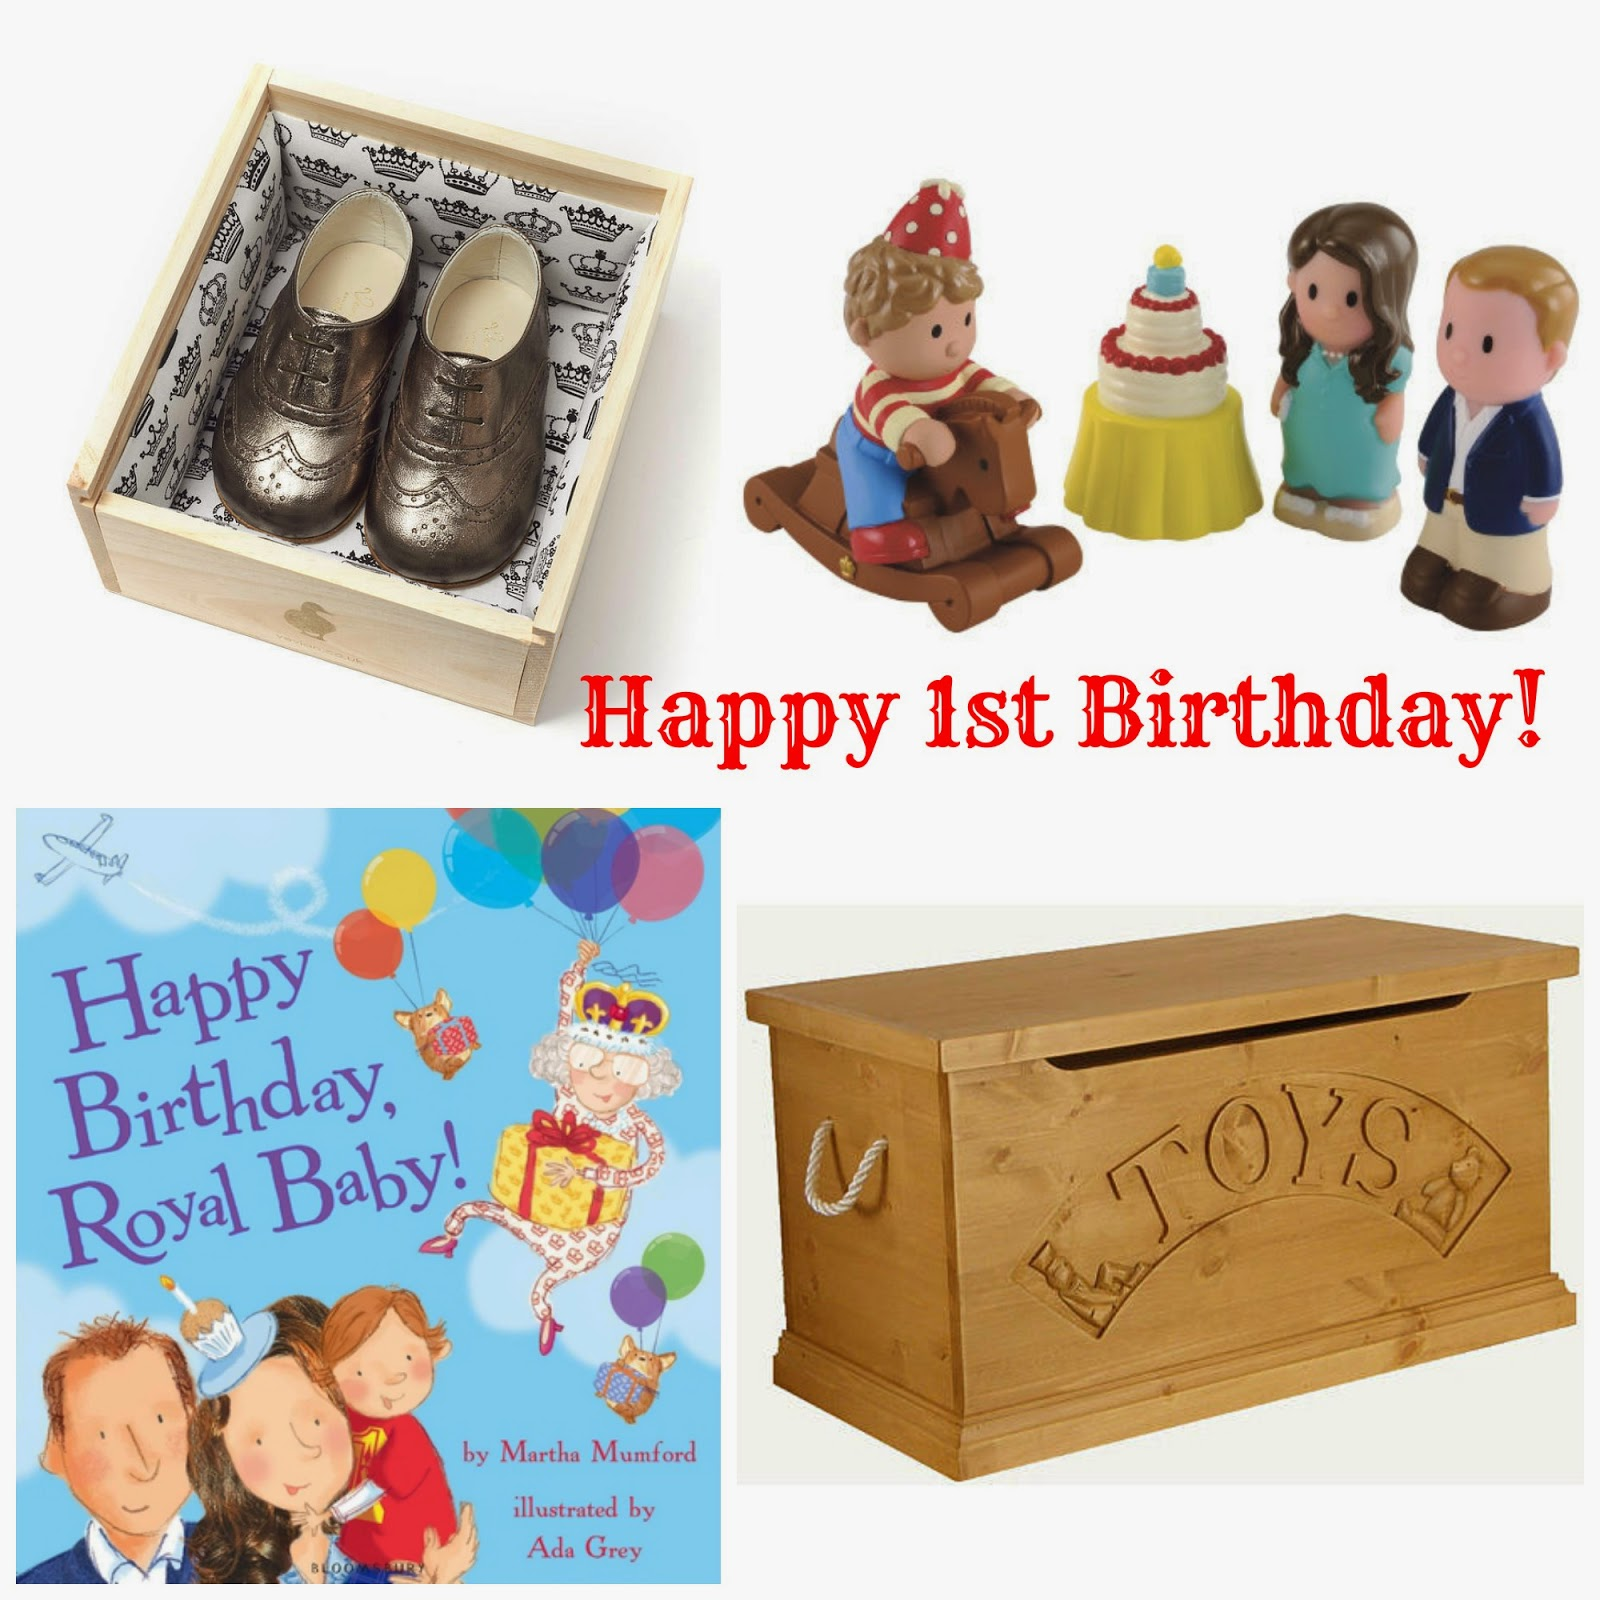 Brilliant 1st Birthday gifts fit for a Little Prince…| prince george | kate middleton | prince william | royal baby | 1st birthday | first birthday | royal birthday | prince georges birthday | birthday gifts | 1st birthday party | gifts for boys | early learning centre happy birthday george | george royal baby | william and kate | birthday party | mamasvib